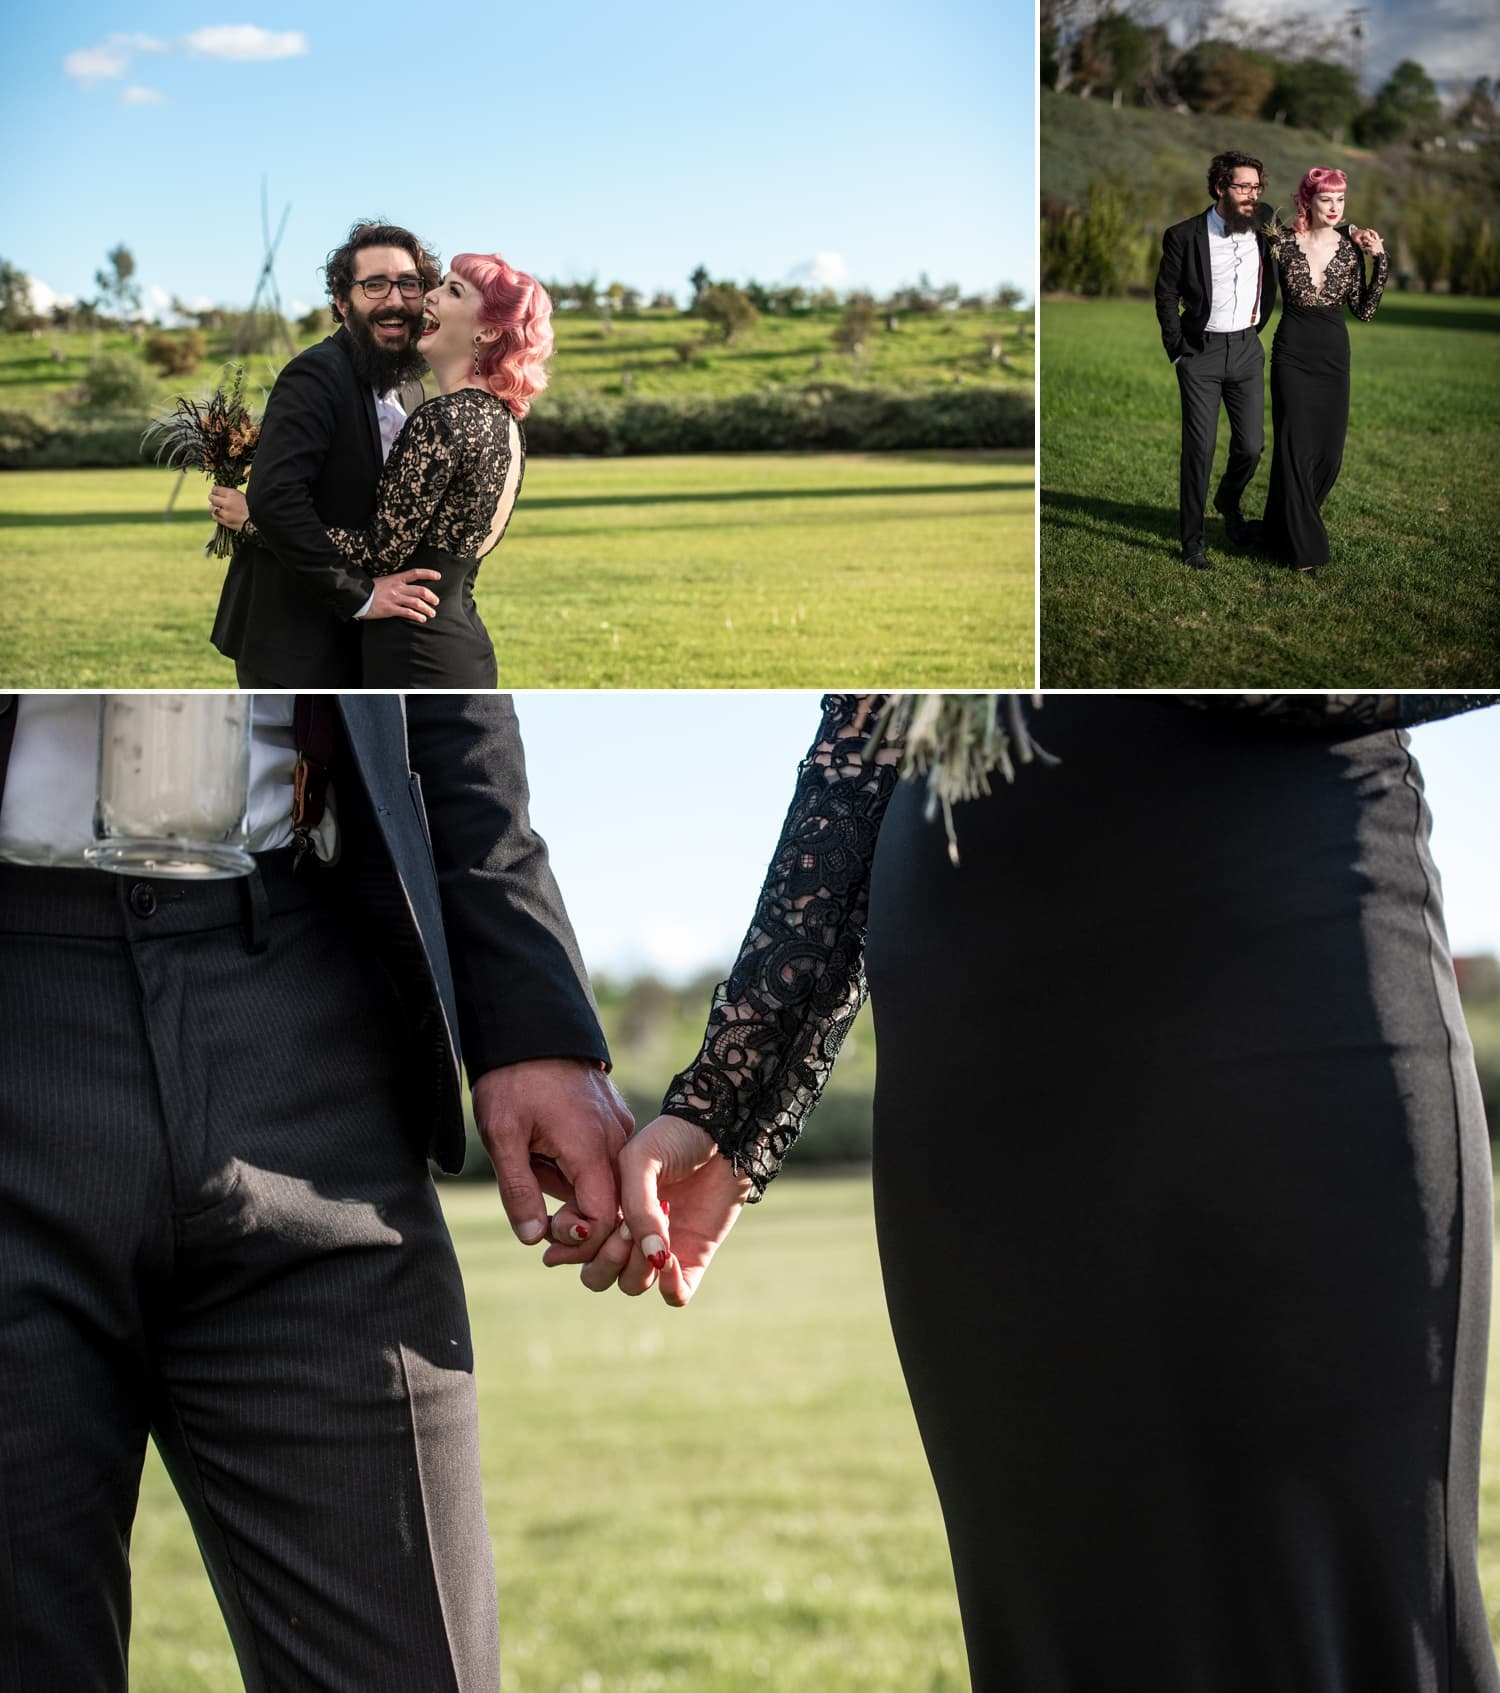 couples wedding portraits at ethereal open air resort